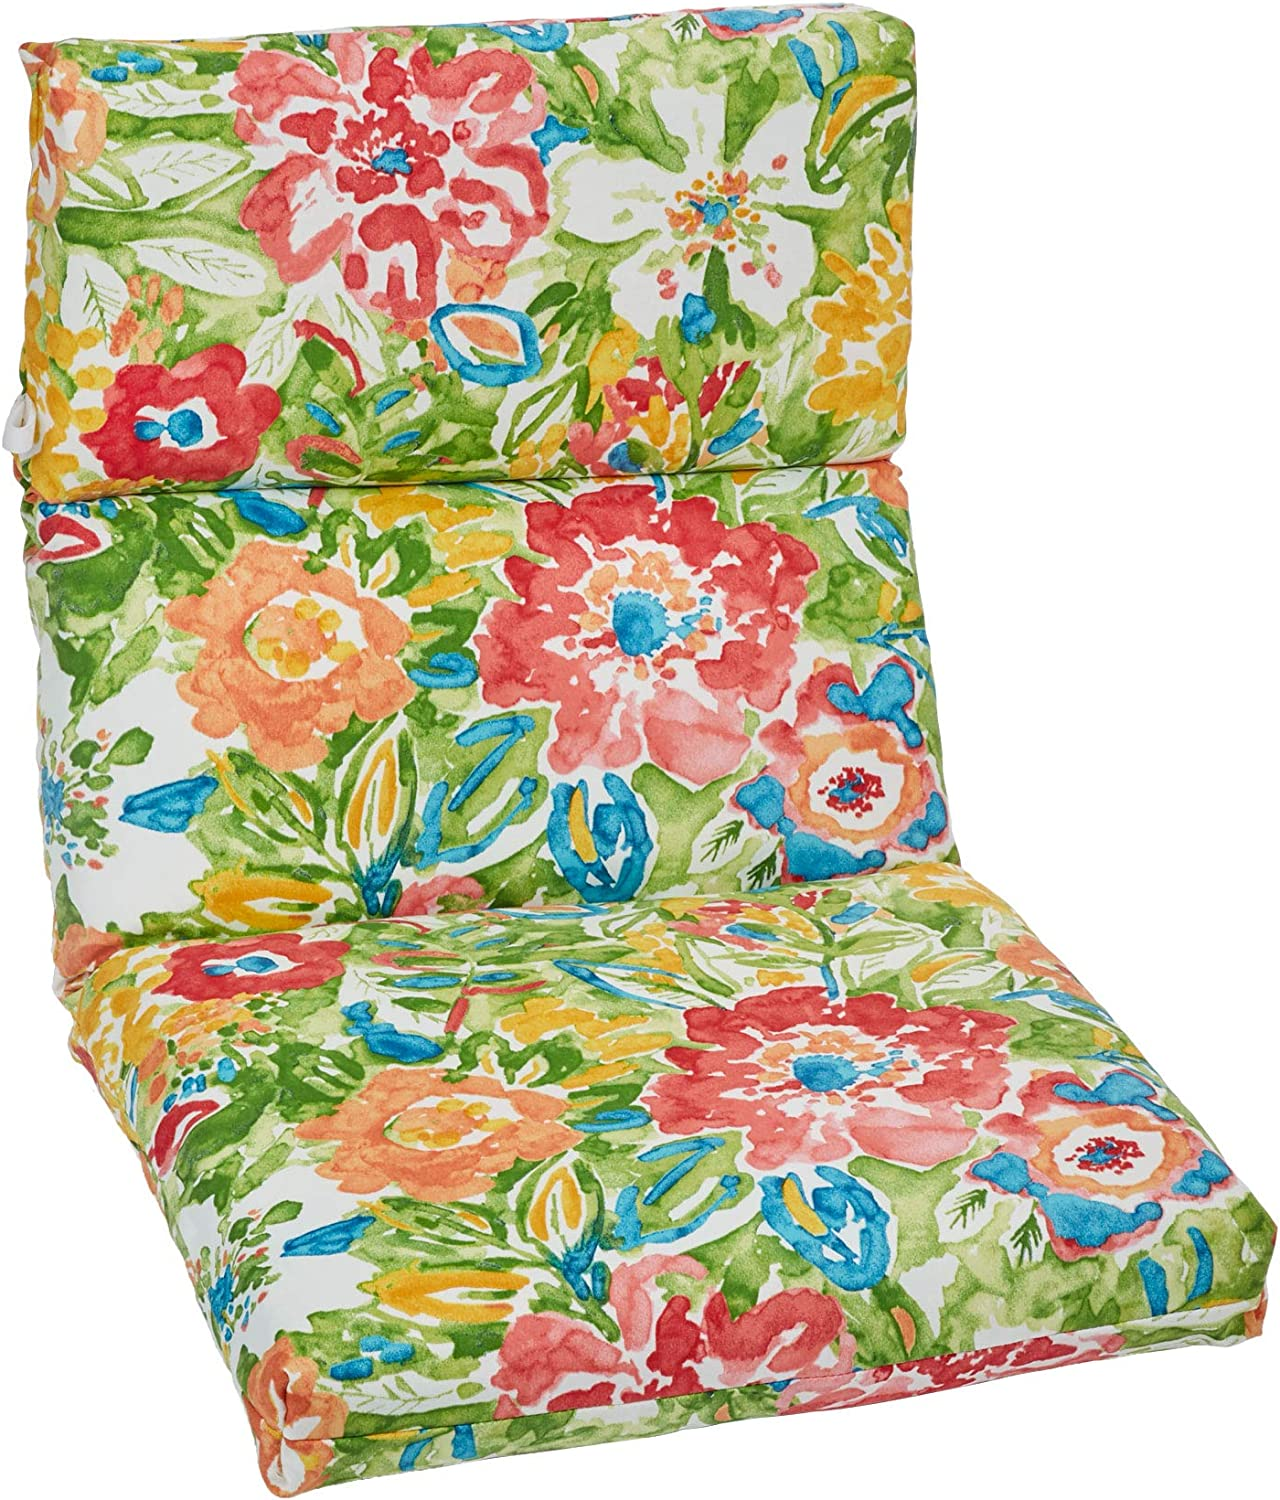 BrylaneHome Universal Chair Cushion – Poppy Green